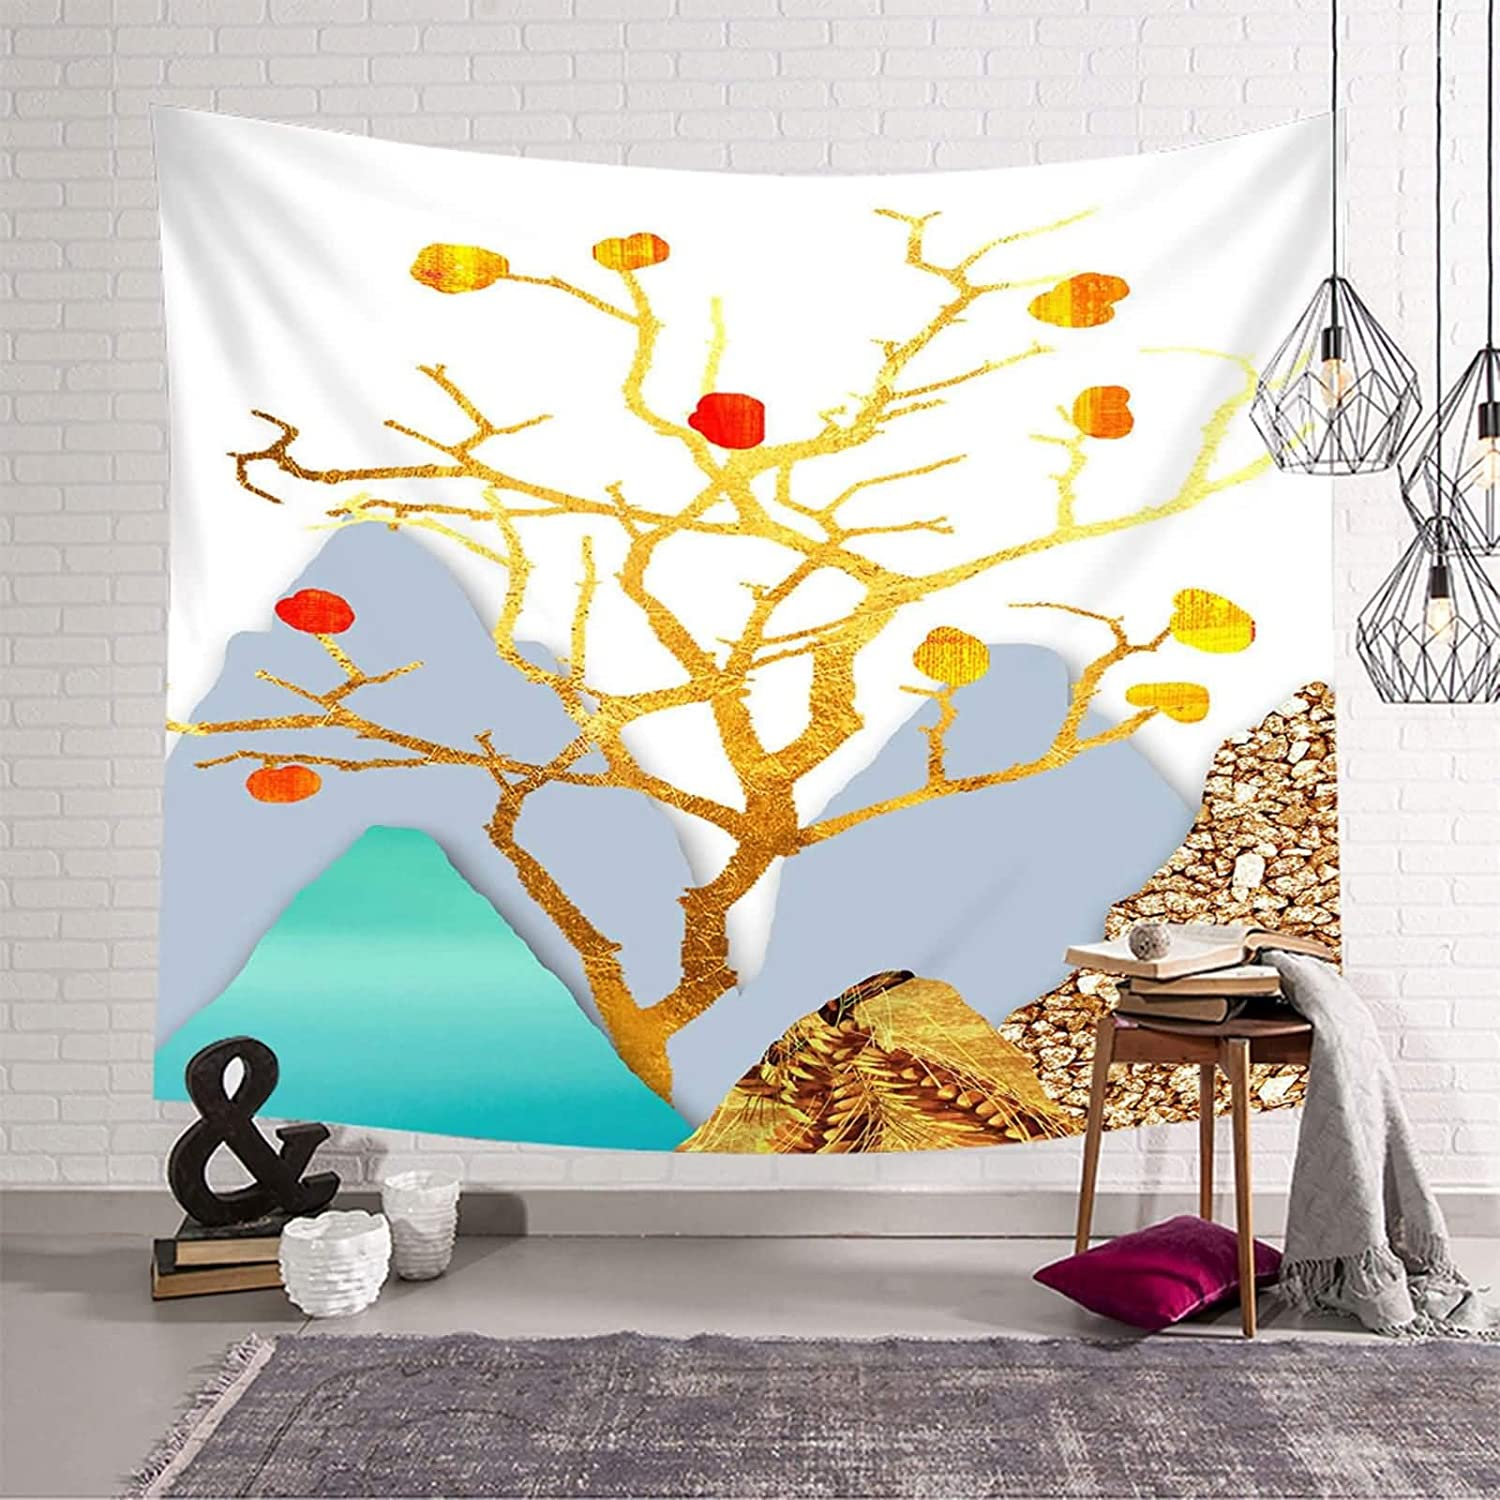 AMDXD Wall Hanging Decor Manufacturer OFFicial shop for Bedroom Max 54% OFF 350x256CM 100